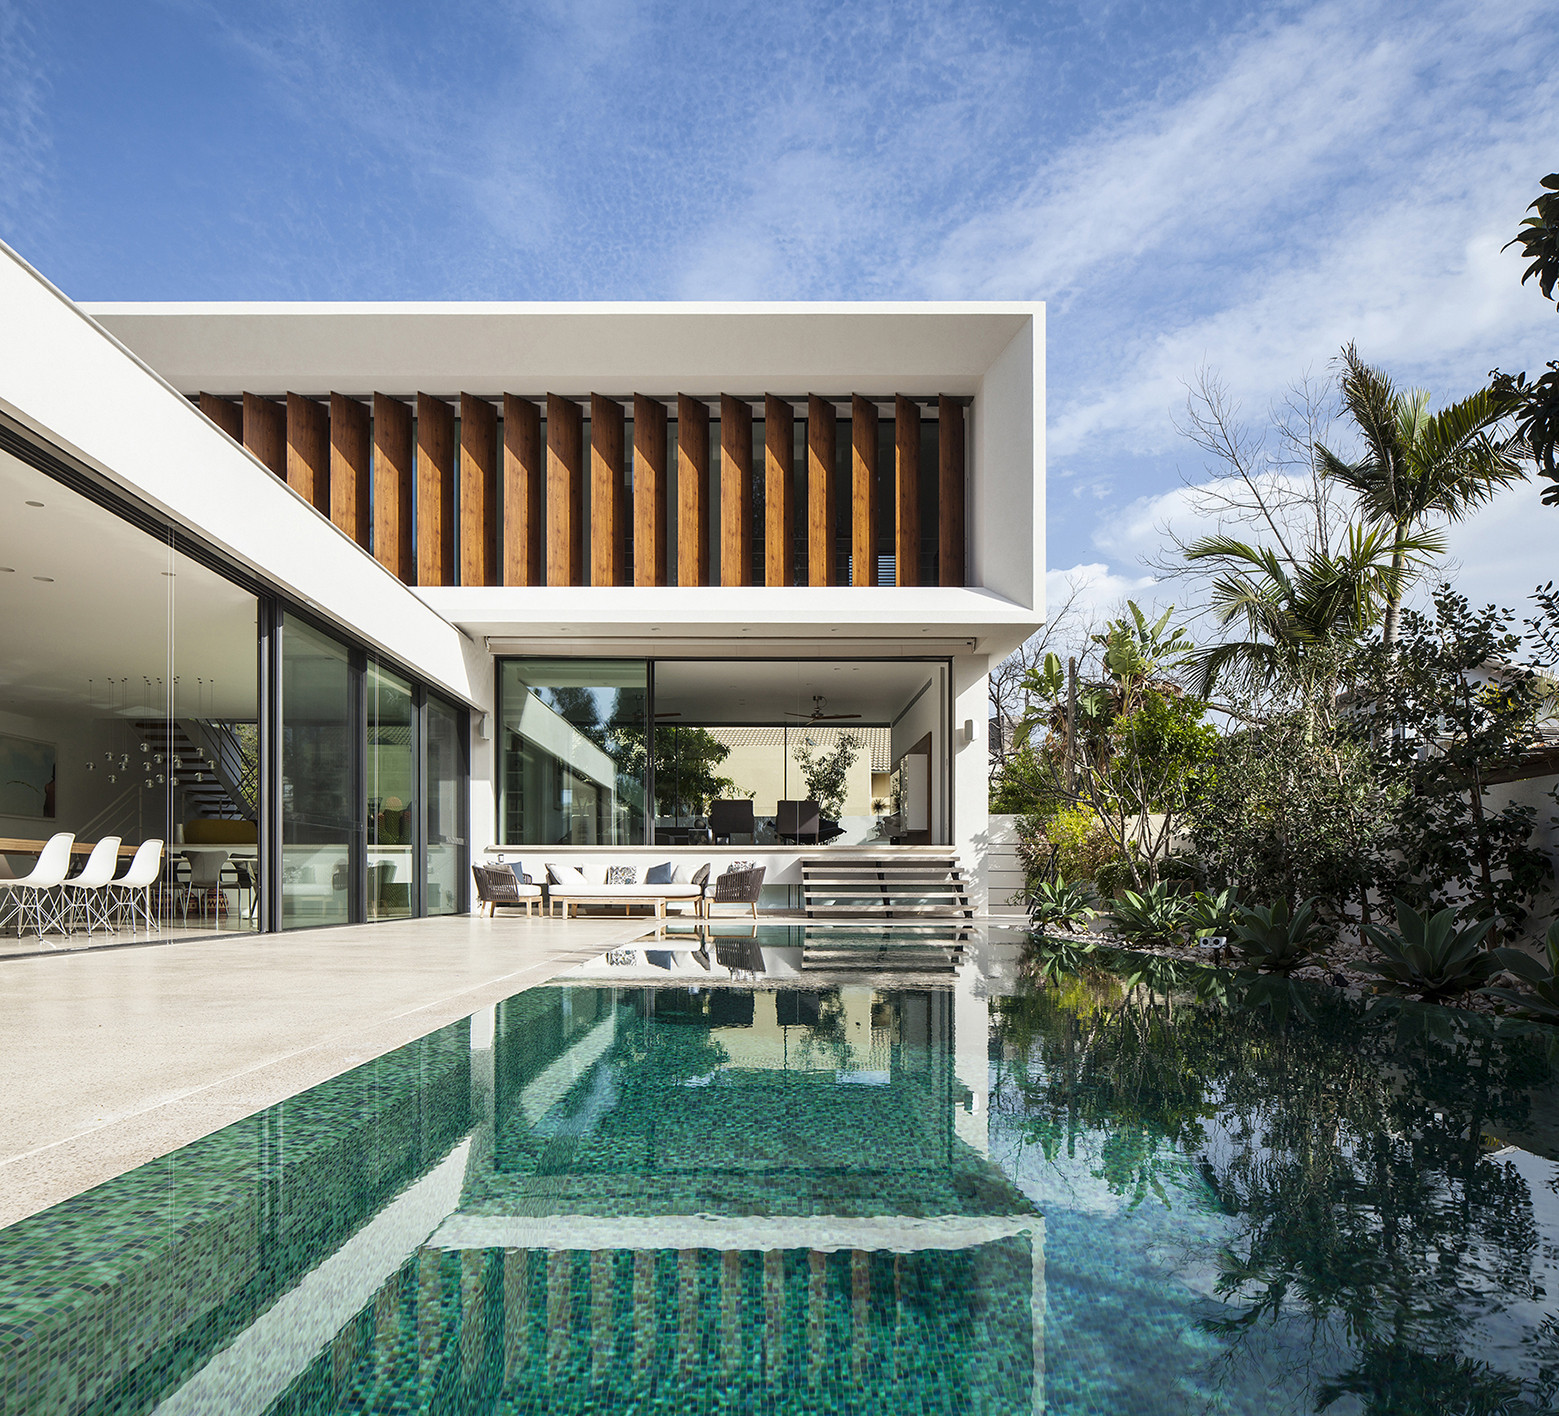 Mediterranean villa paz gersh architects archdaily for L architecture moderne plan